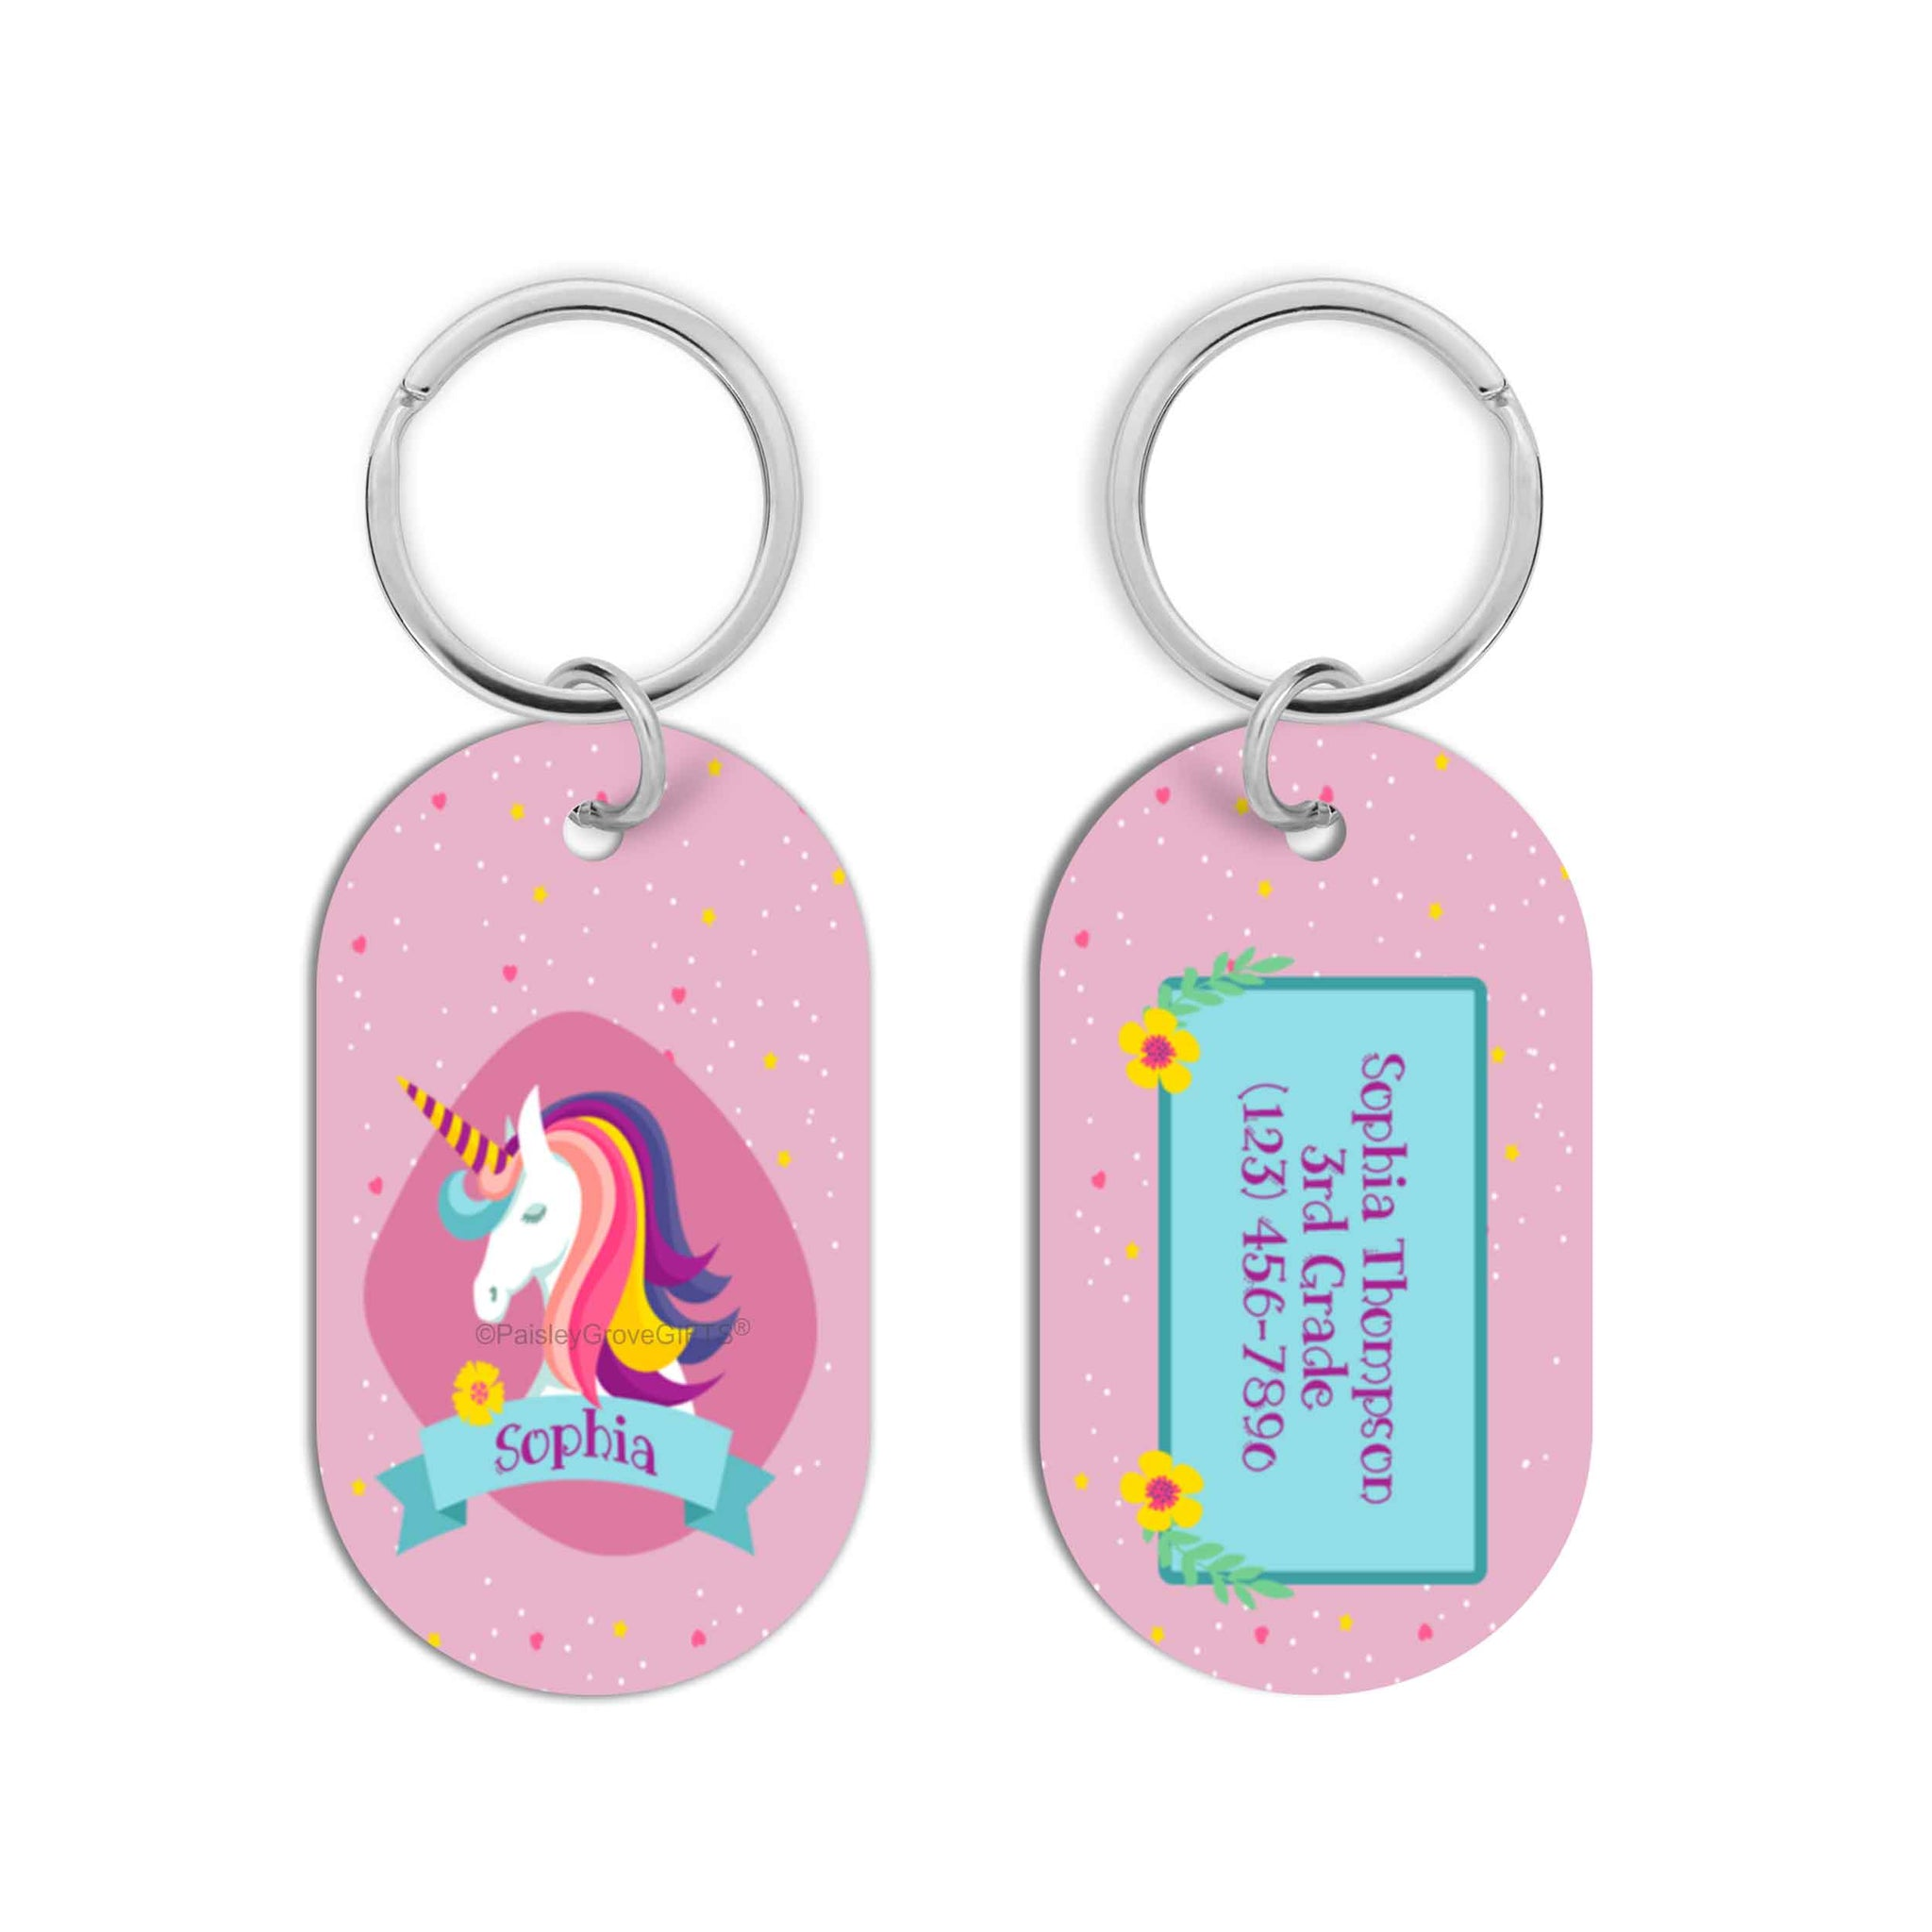 CopyrightPaisleyGroveGIFTS S070d1 Personalized unicorn kids bag luggage tag for backpacks lunch boxes sports bags